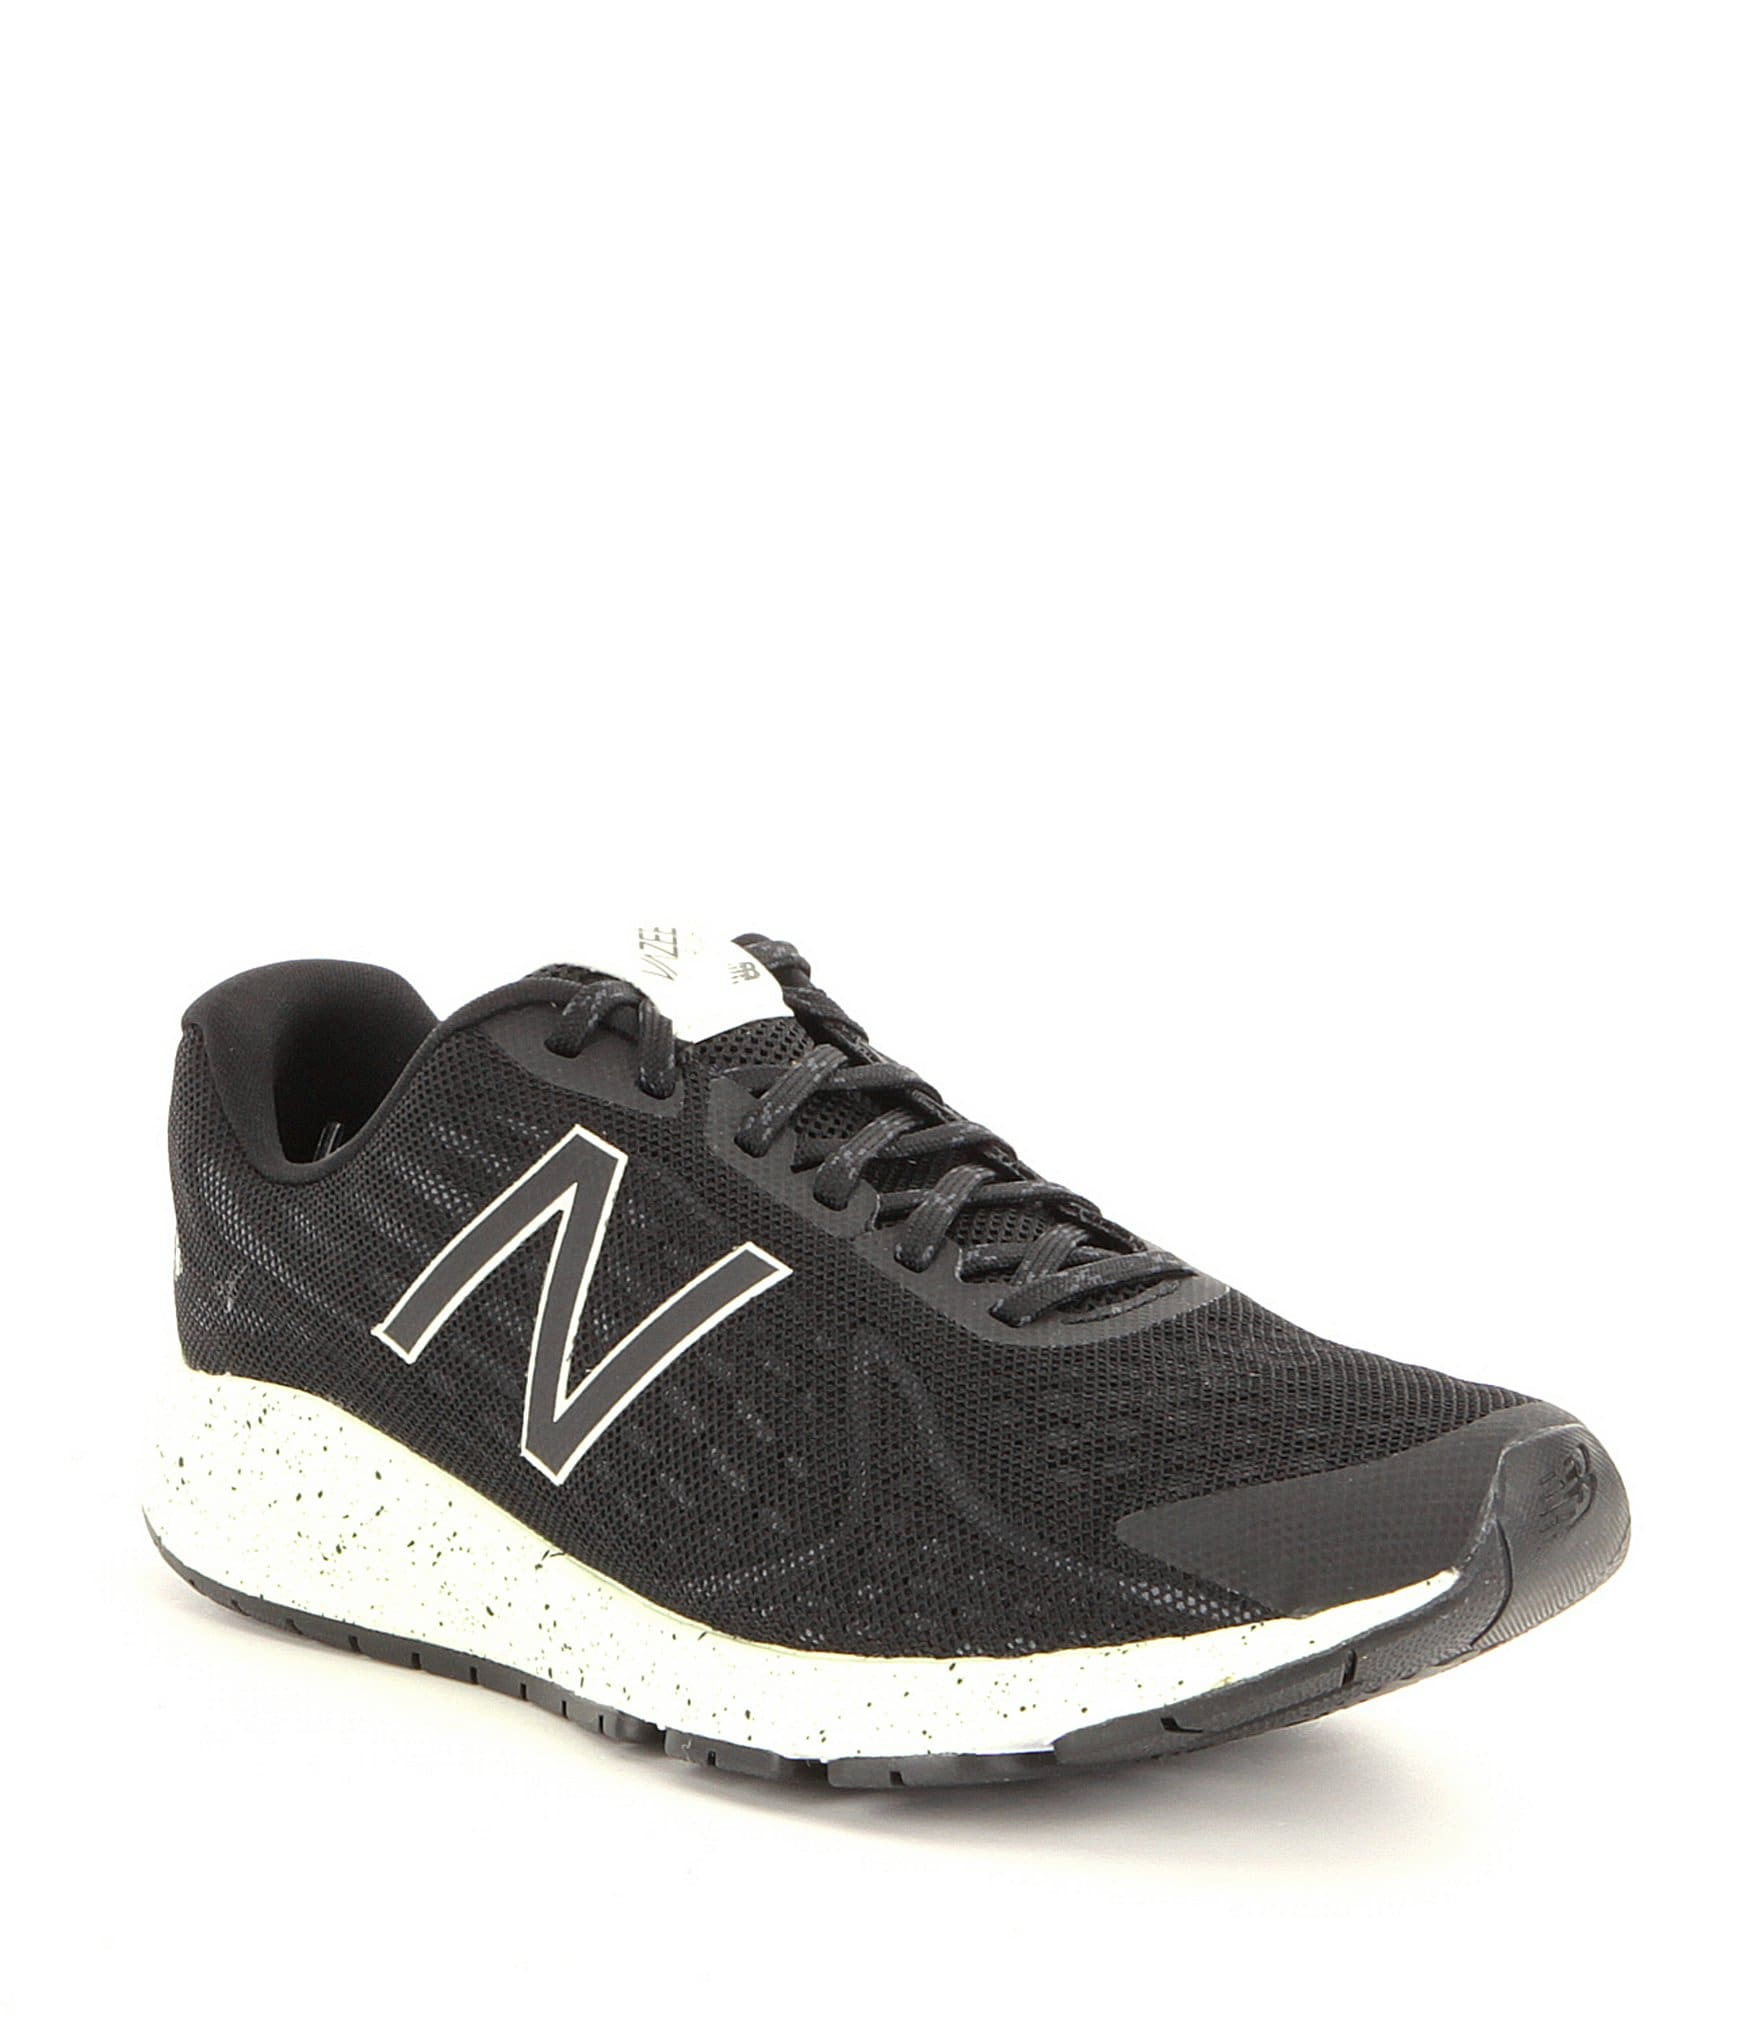 New balance vazee rush v2 mens running shoes black multi online - New Balance Vazee Rush V2 Mens Running Shoes Black Multi Online 54